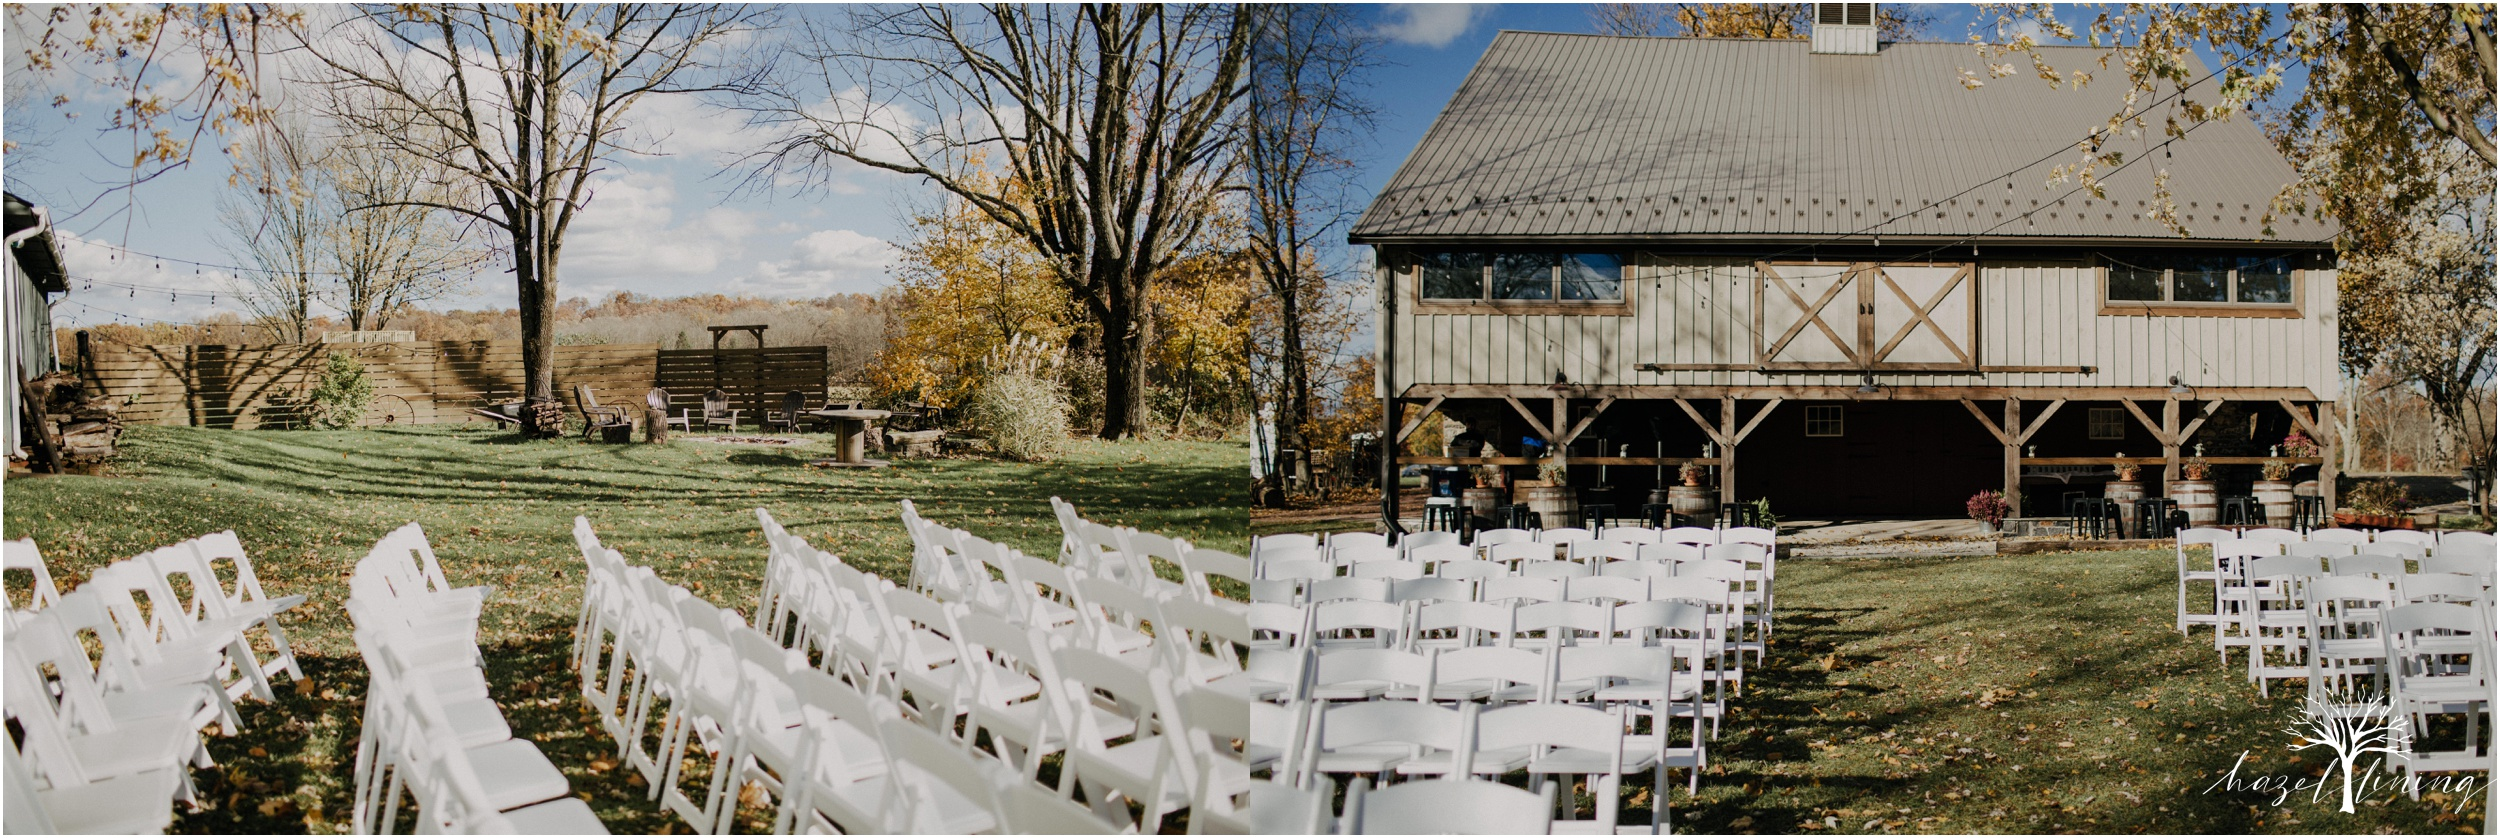 briana-krans-greg-johnston-farm-bakery-and-events-fall-wedding_0082.jpg